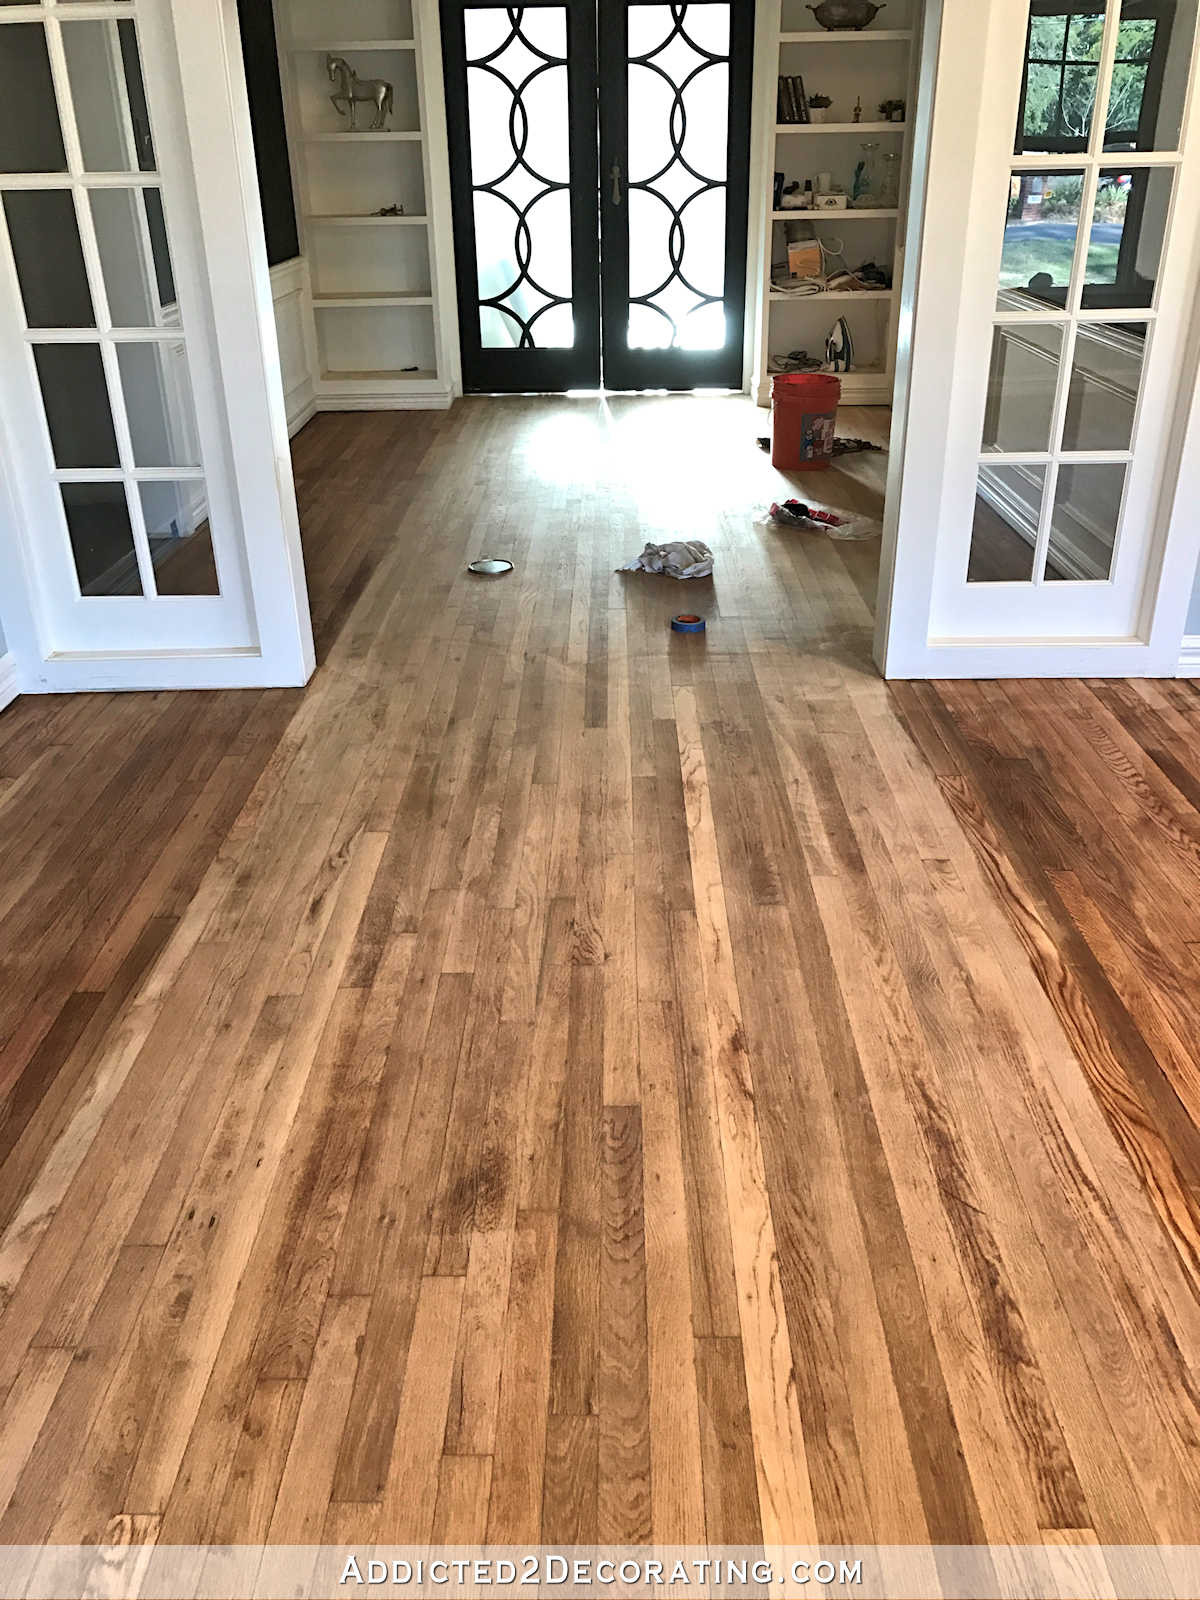 hardwood floor installation tips of adventures in staining my red oak hardwood floors products process intended for staining red oak hardwood floors 5 music room wood conditioner